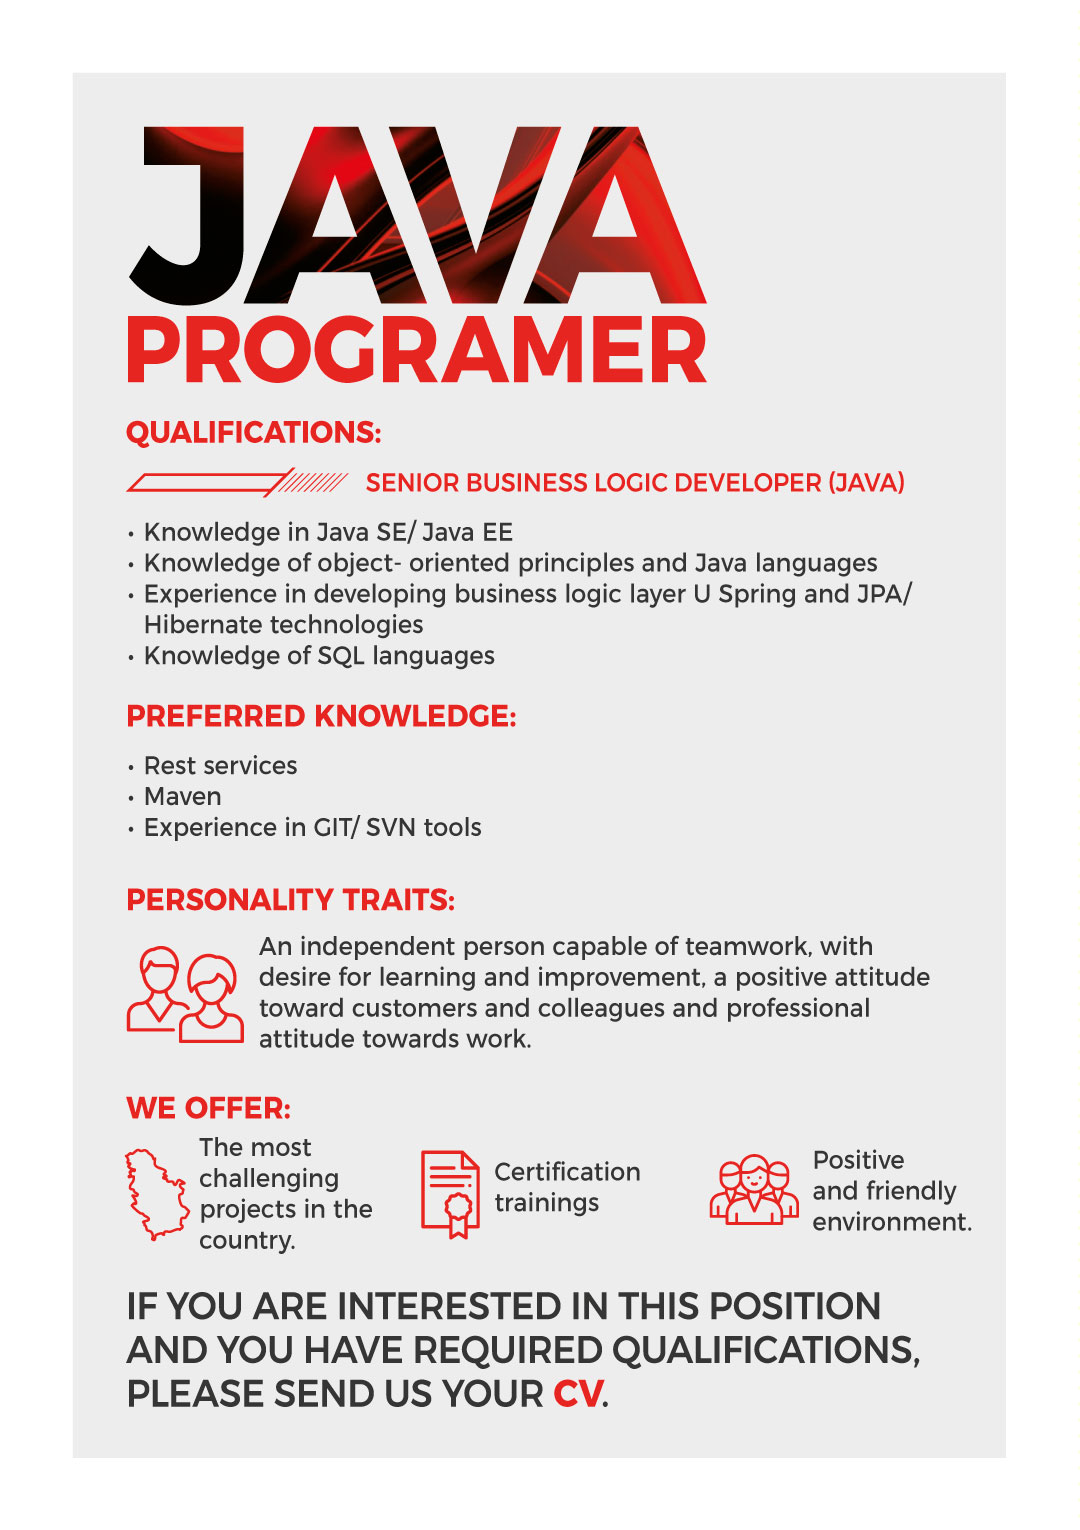 Java-Programer-Website-ENG-2